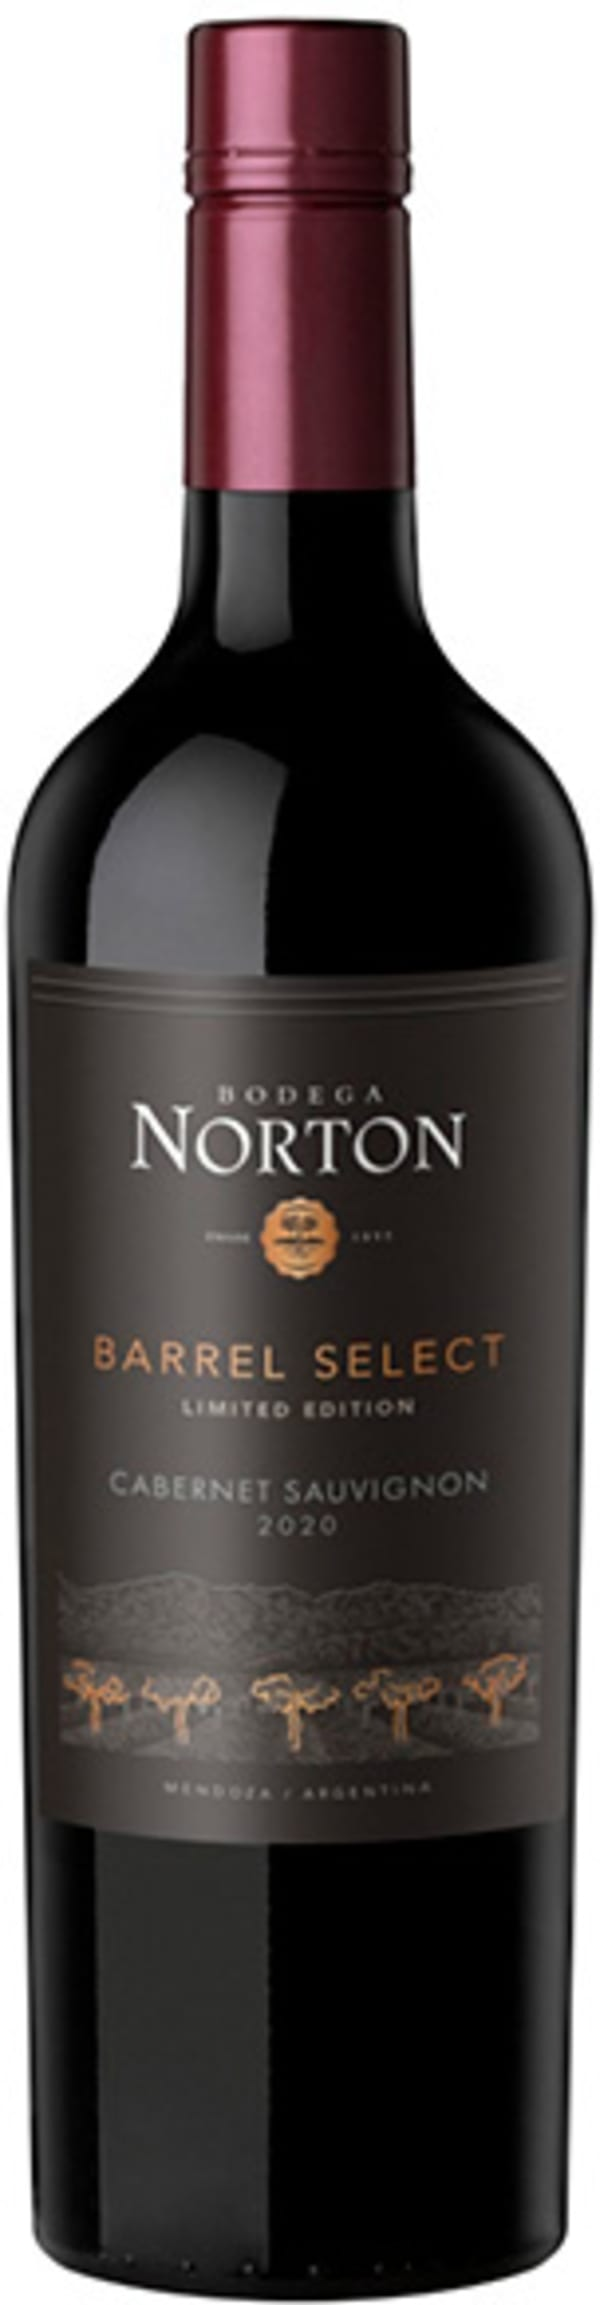 Norton Barrel Select Cabernet Sauvignon 2019